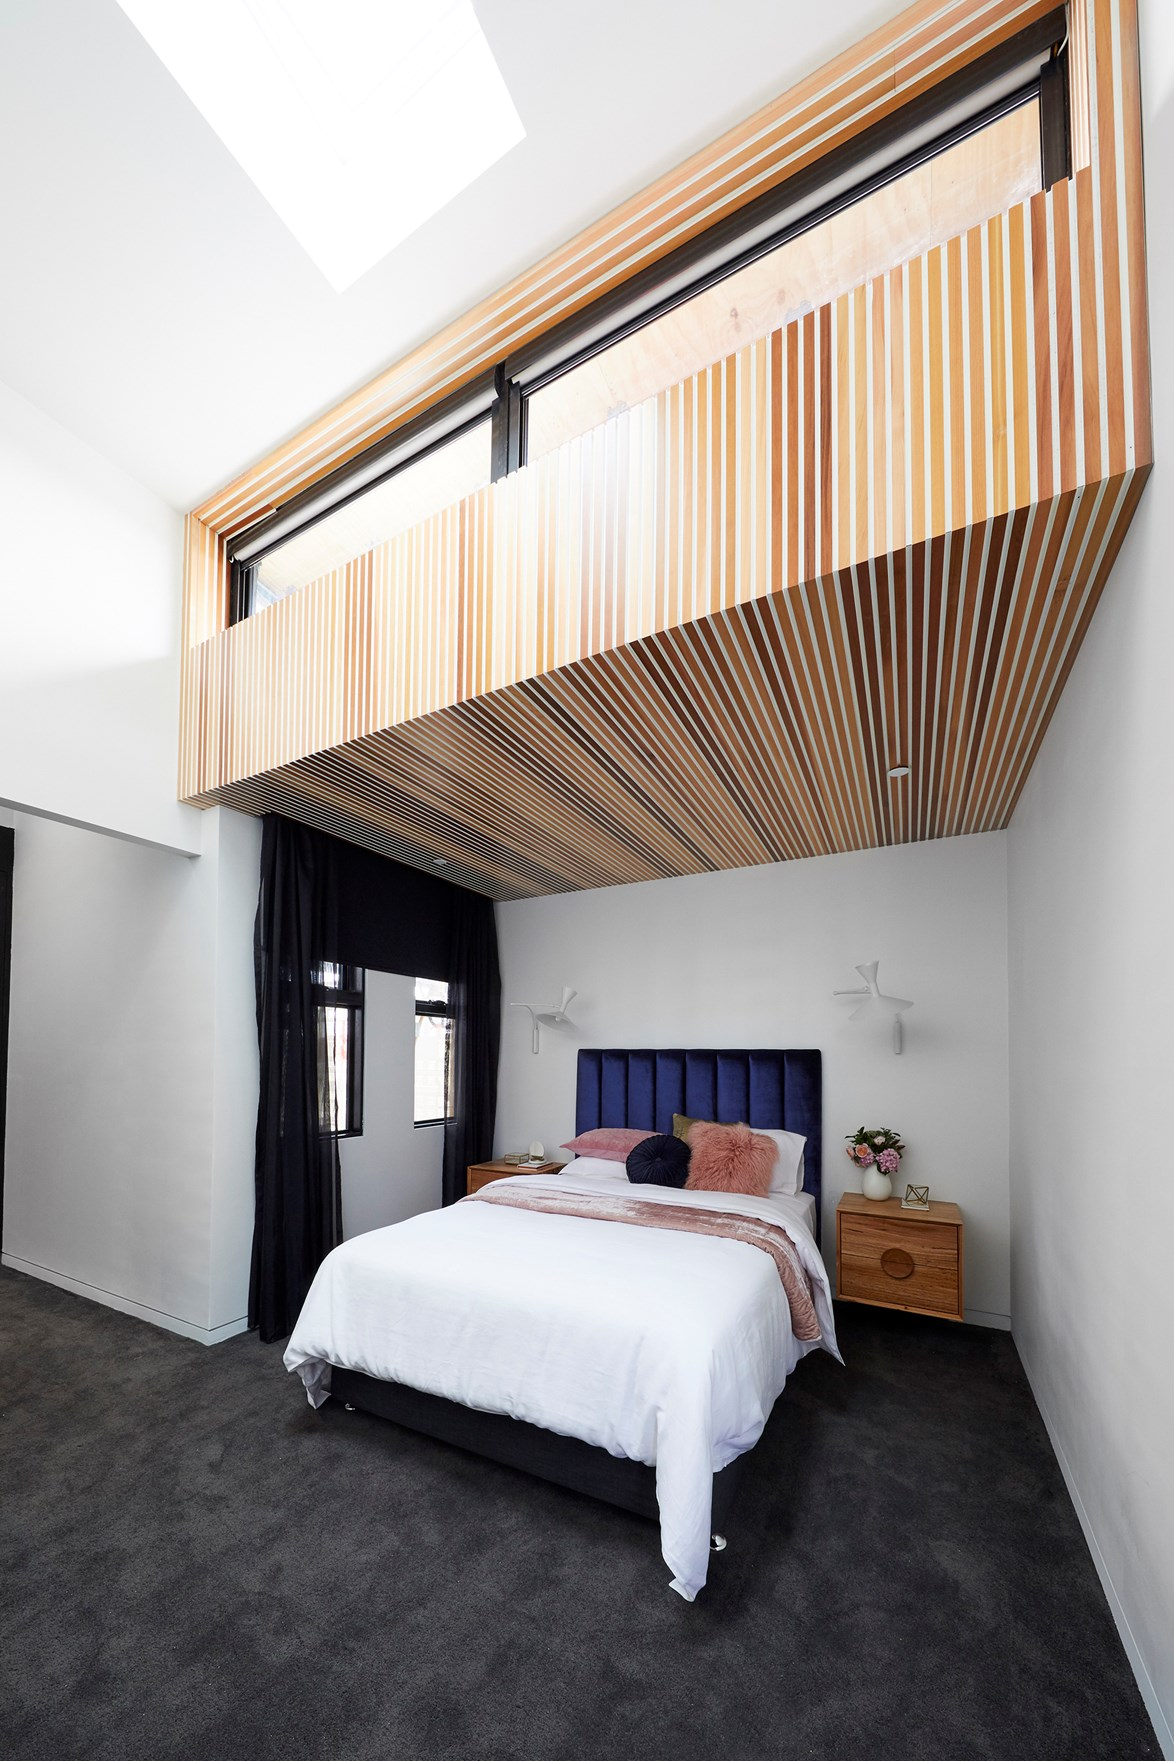 Timber cladding in the master bedroom along with bespoke bedside tables earned Bianca and Carla high praise from judges Neale, Shaynna and Darren.